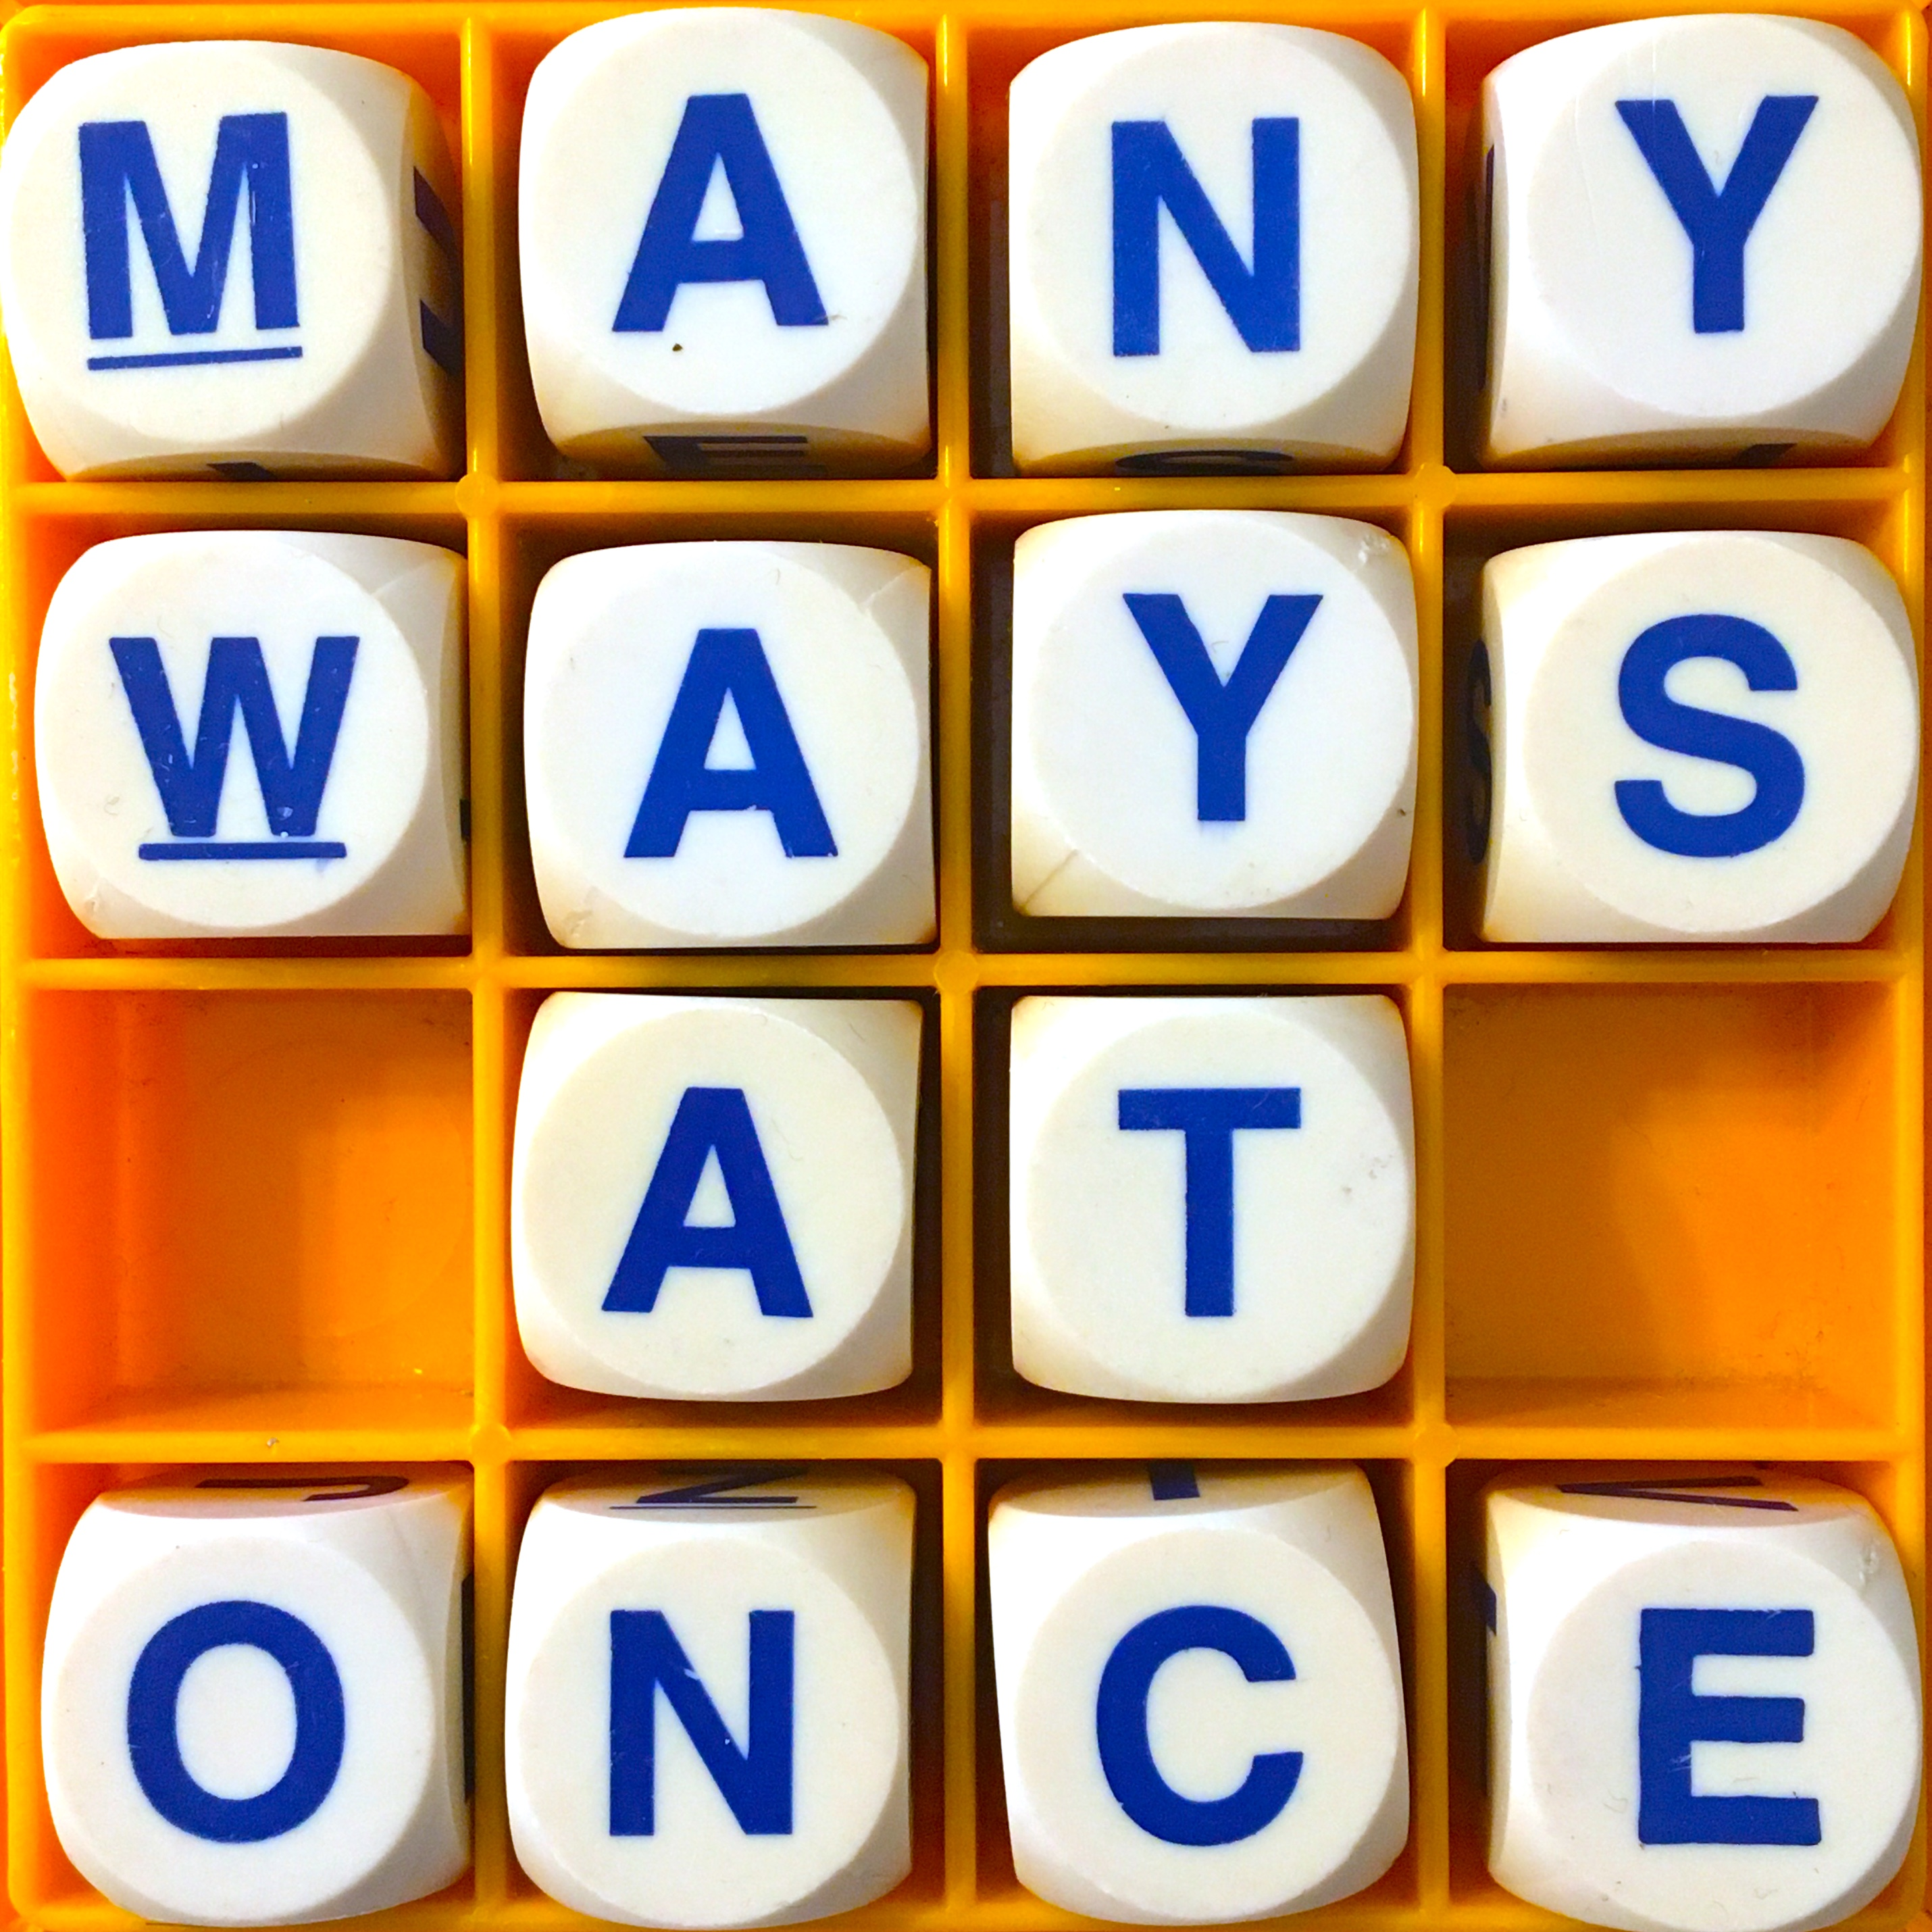 117. Many Ways At Once